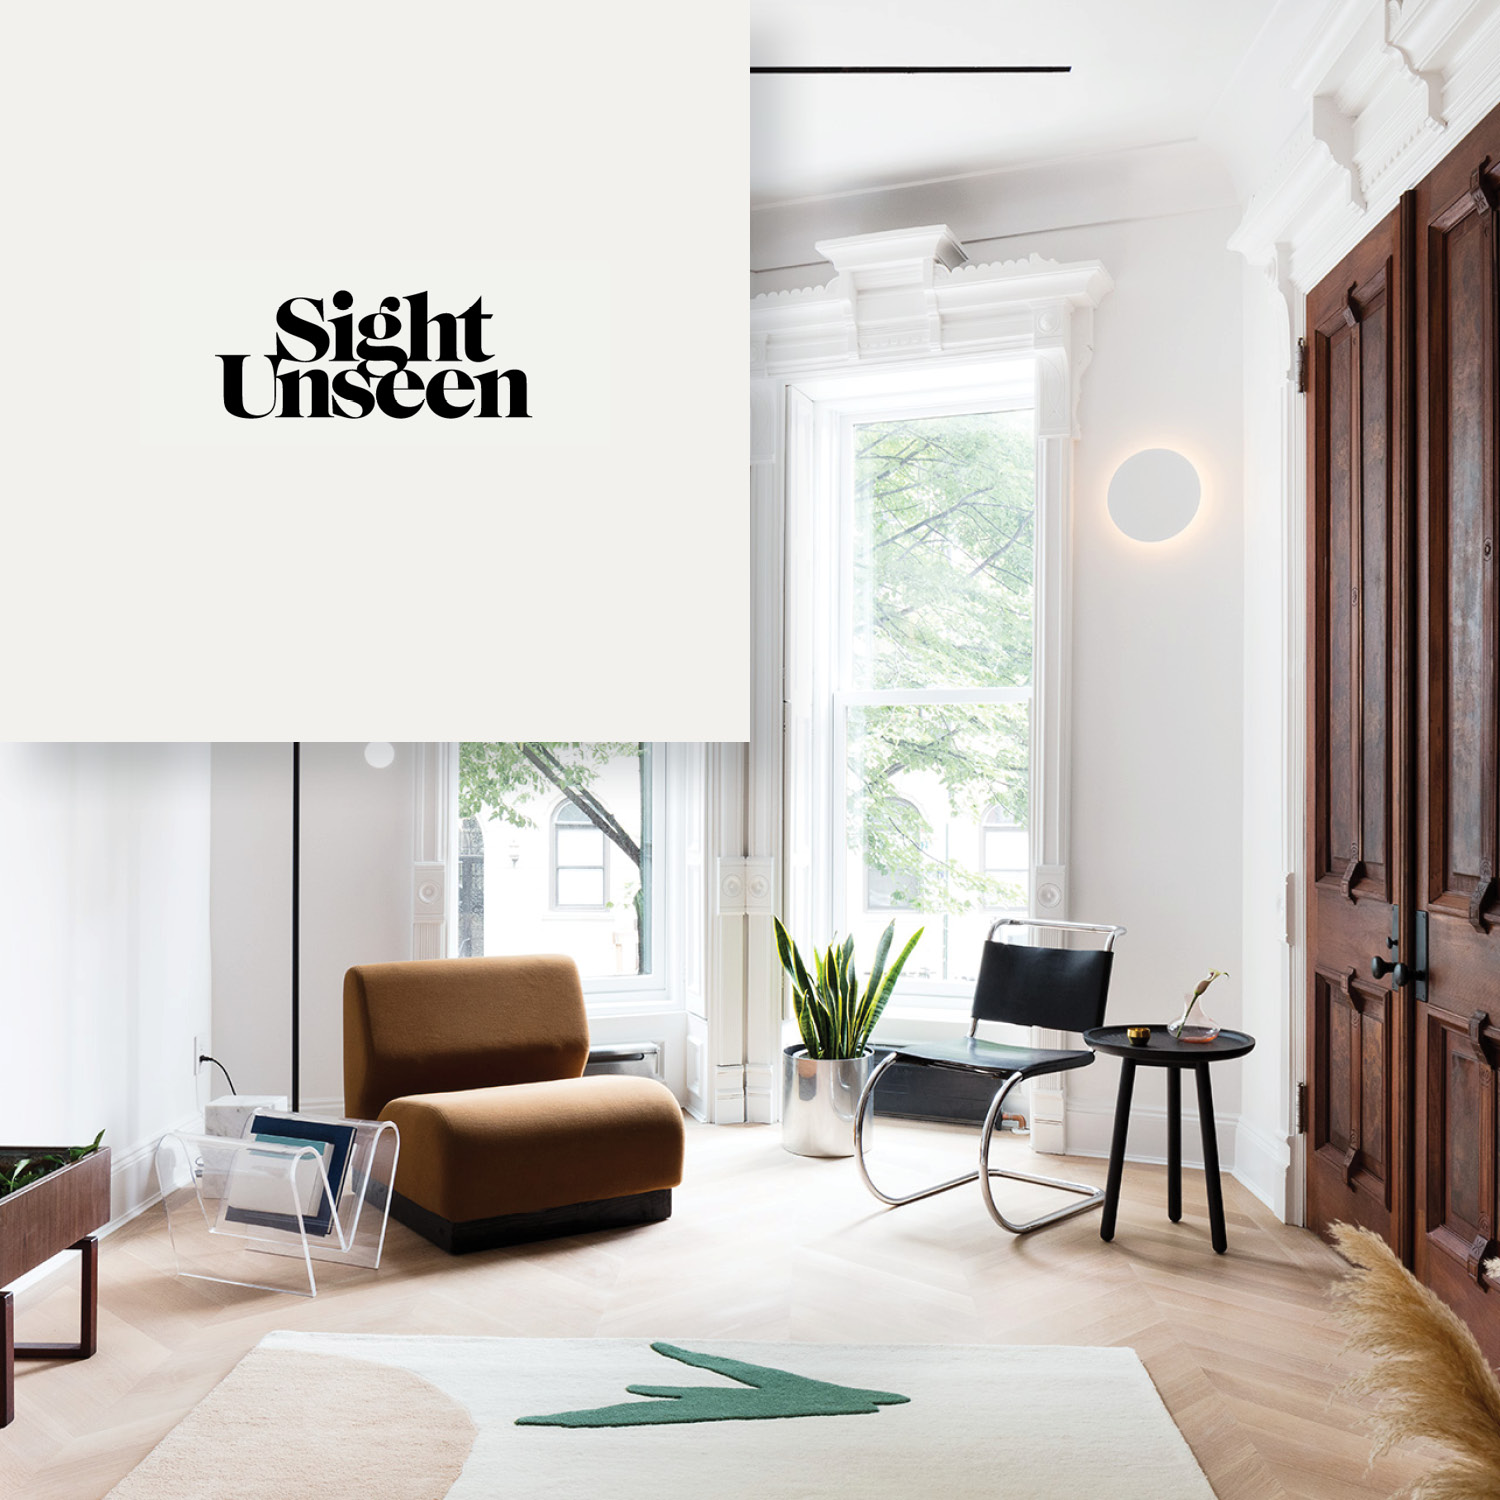 Sight Unseen, July 2018